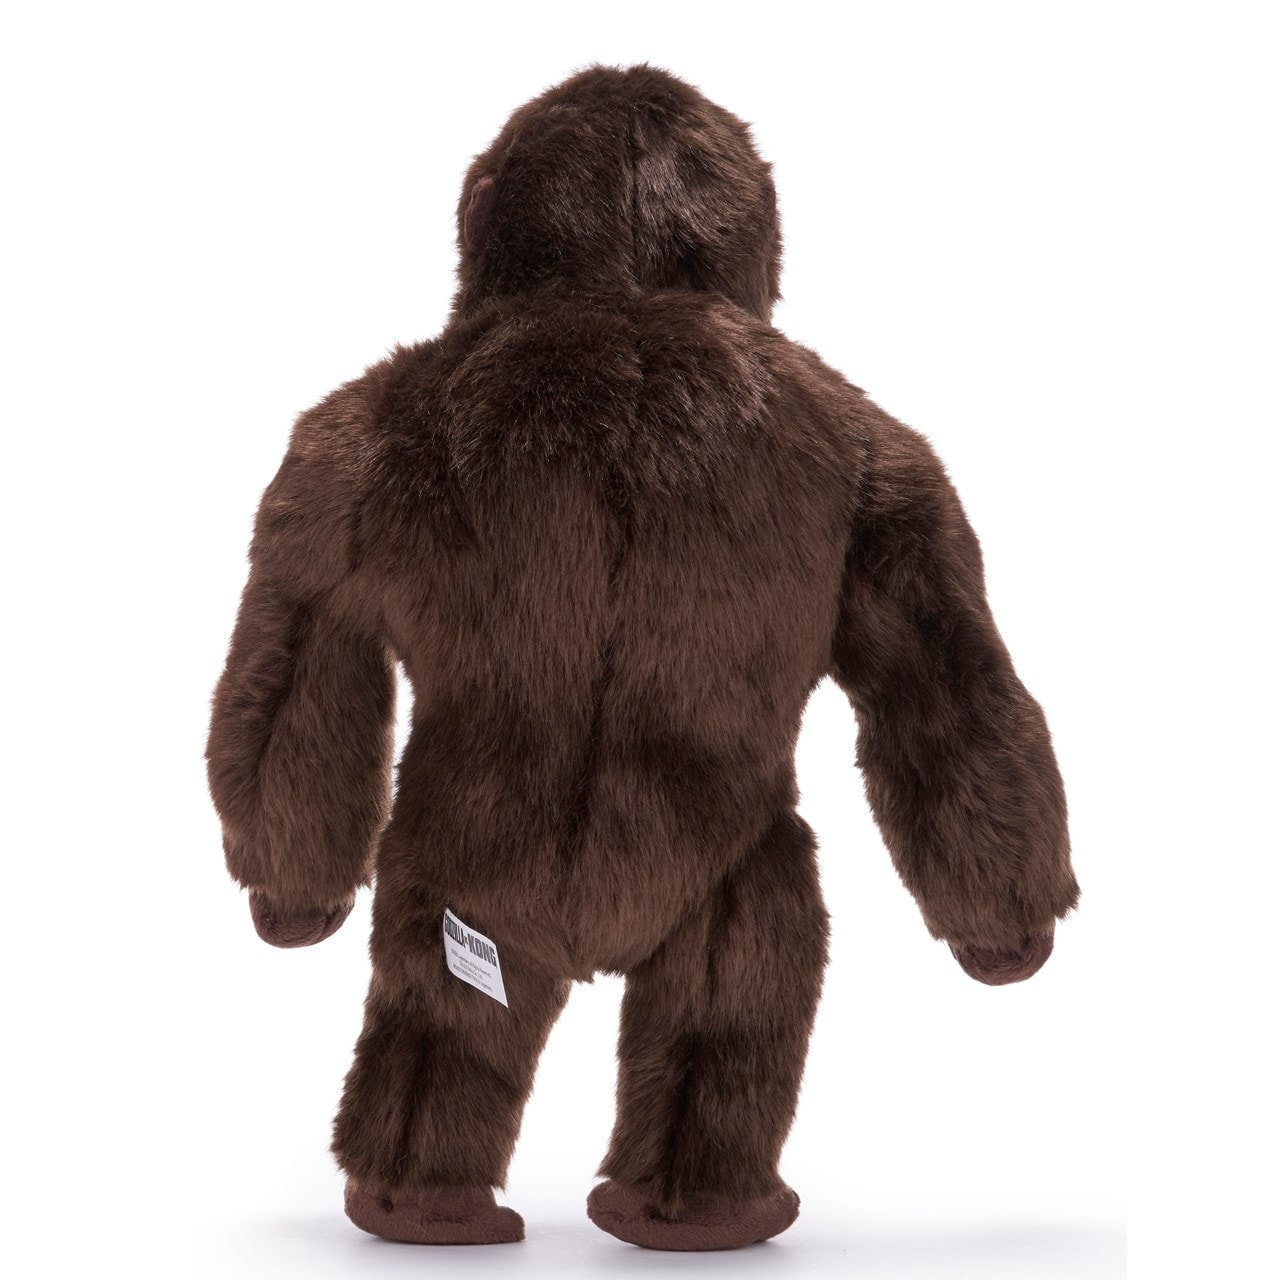 Kong 12'' Plush Toy - 4